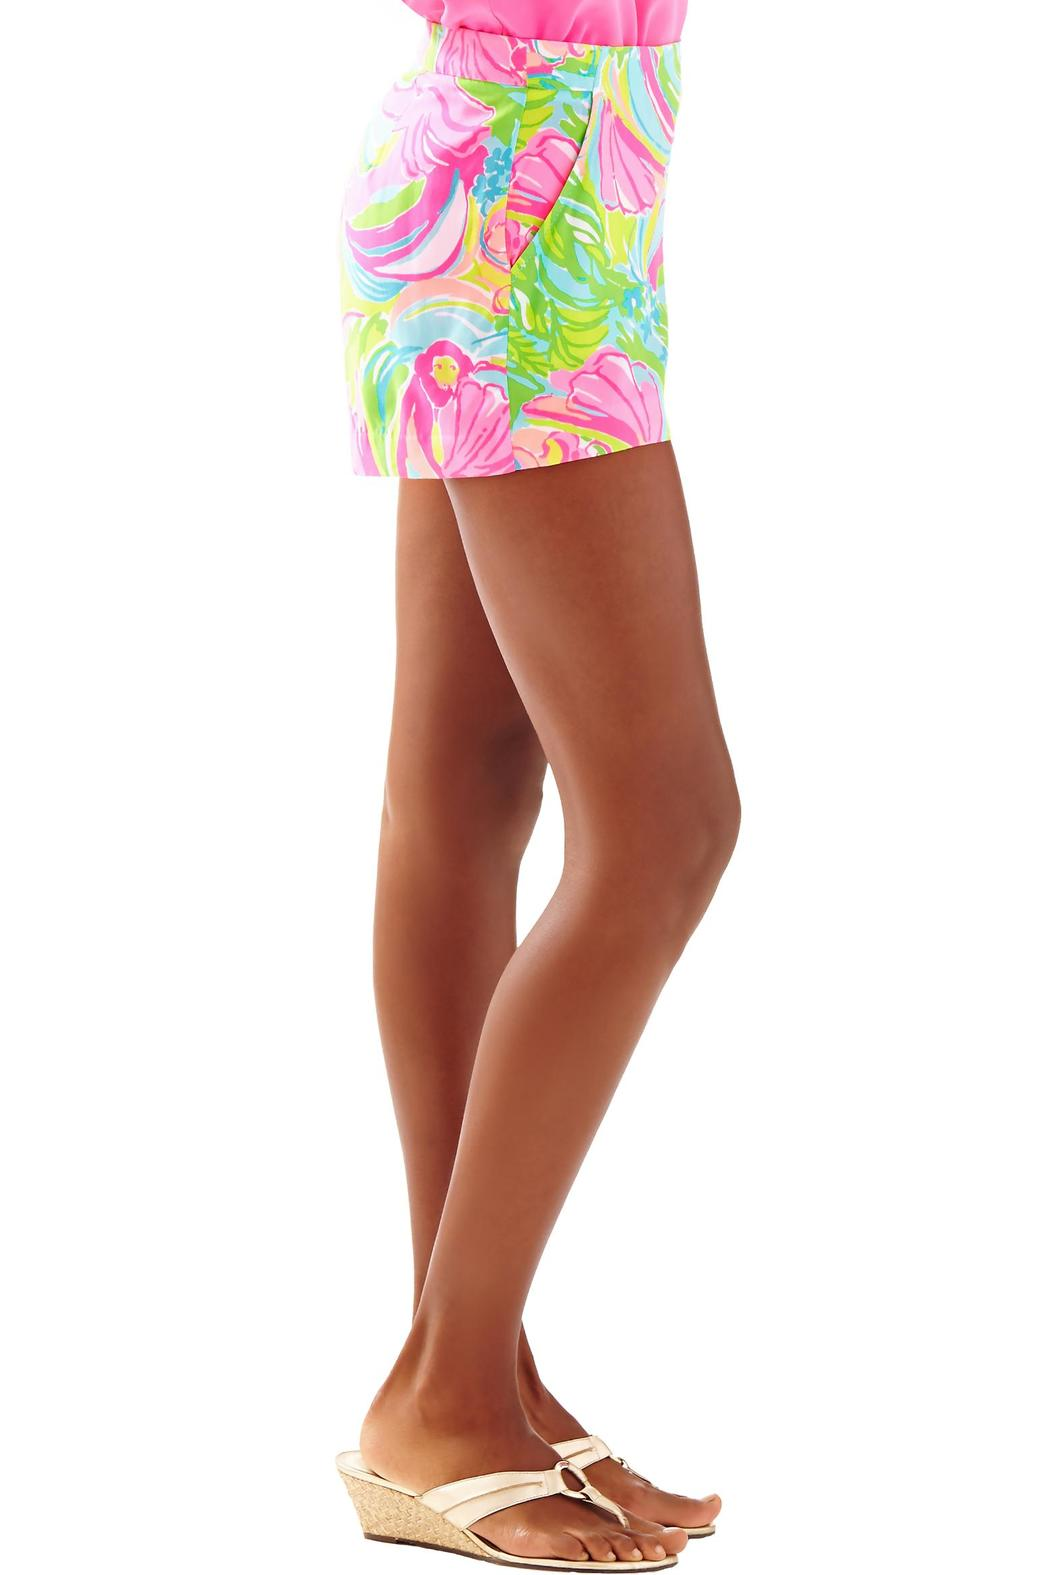 Lilly Pulitzer Jeannie Shorts From Sandestin Golf And